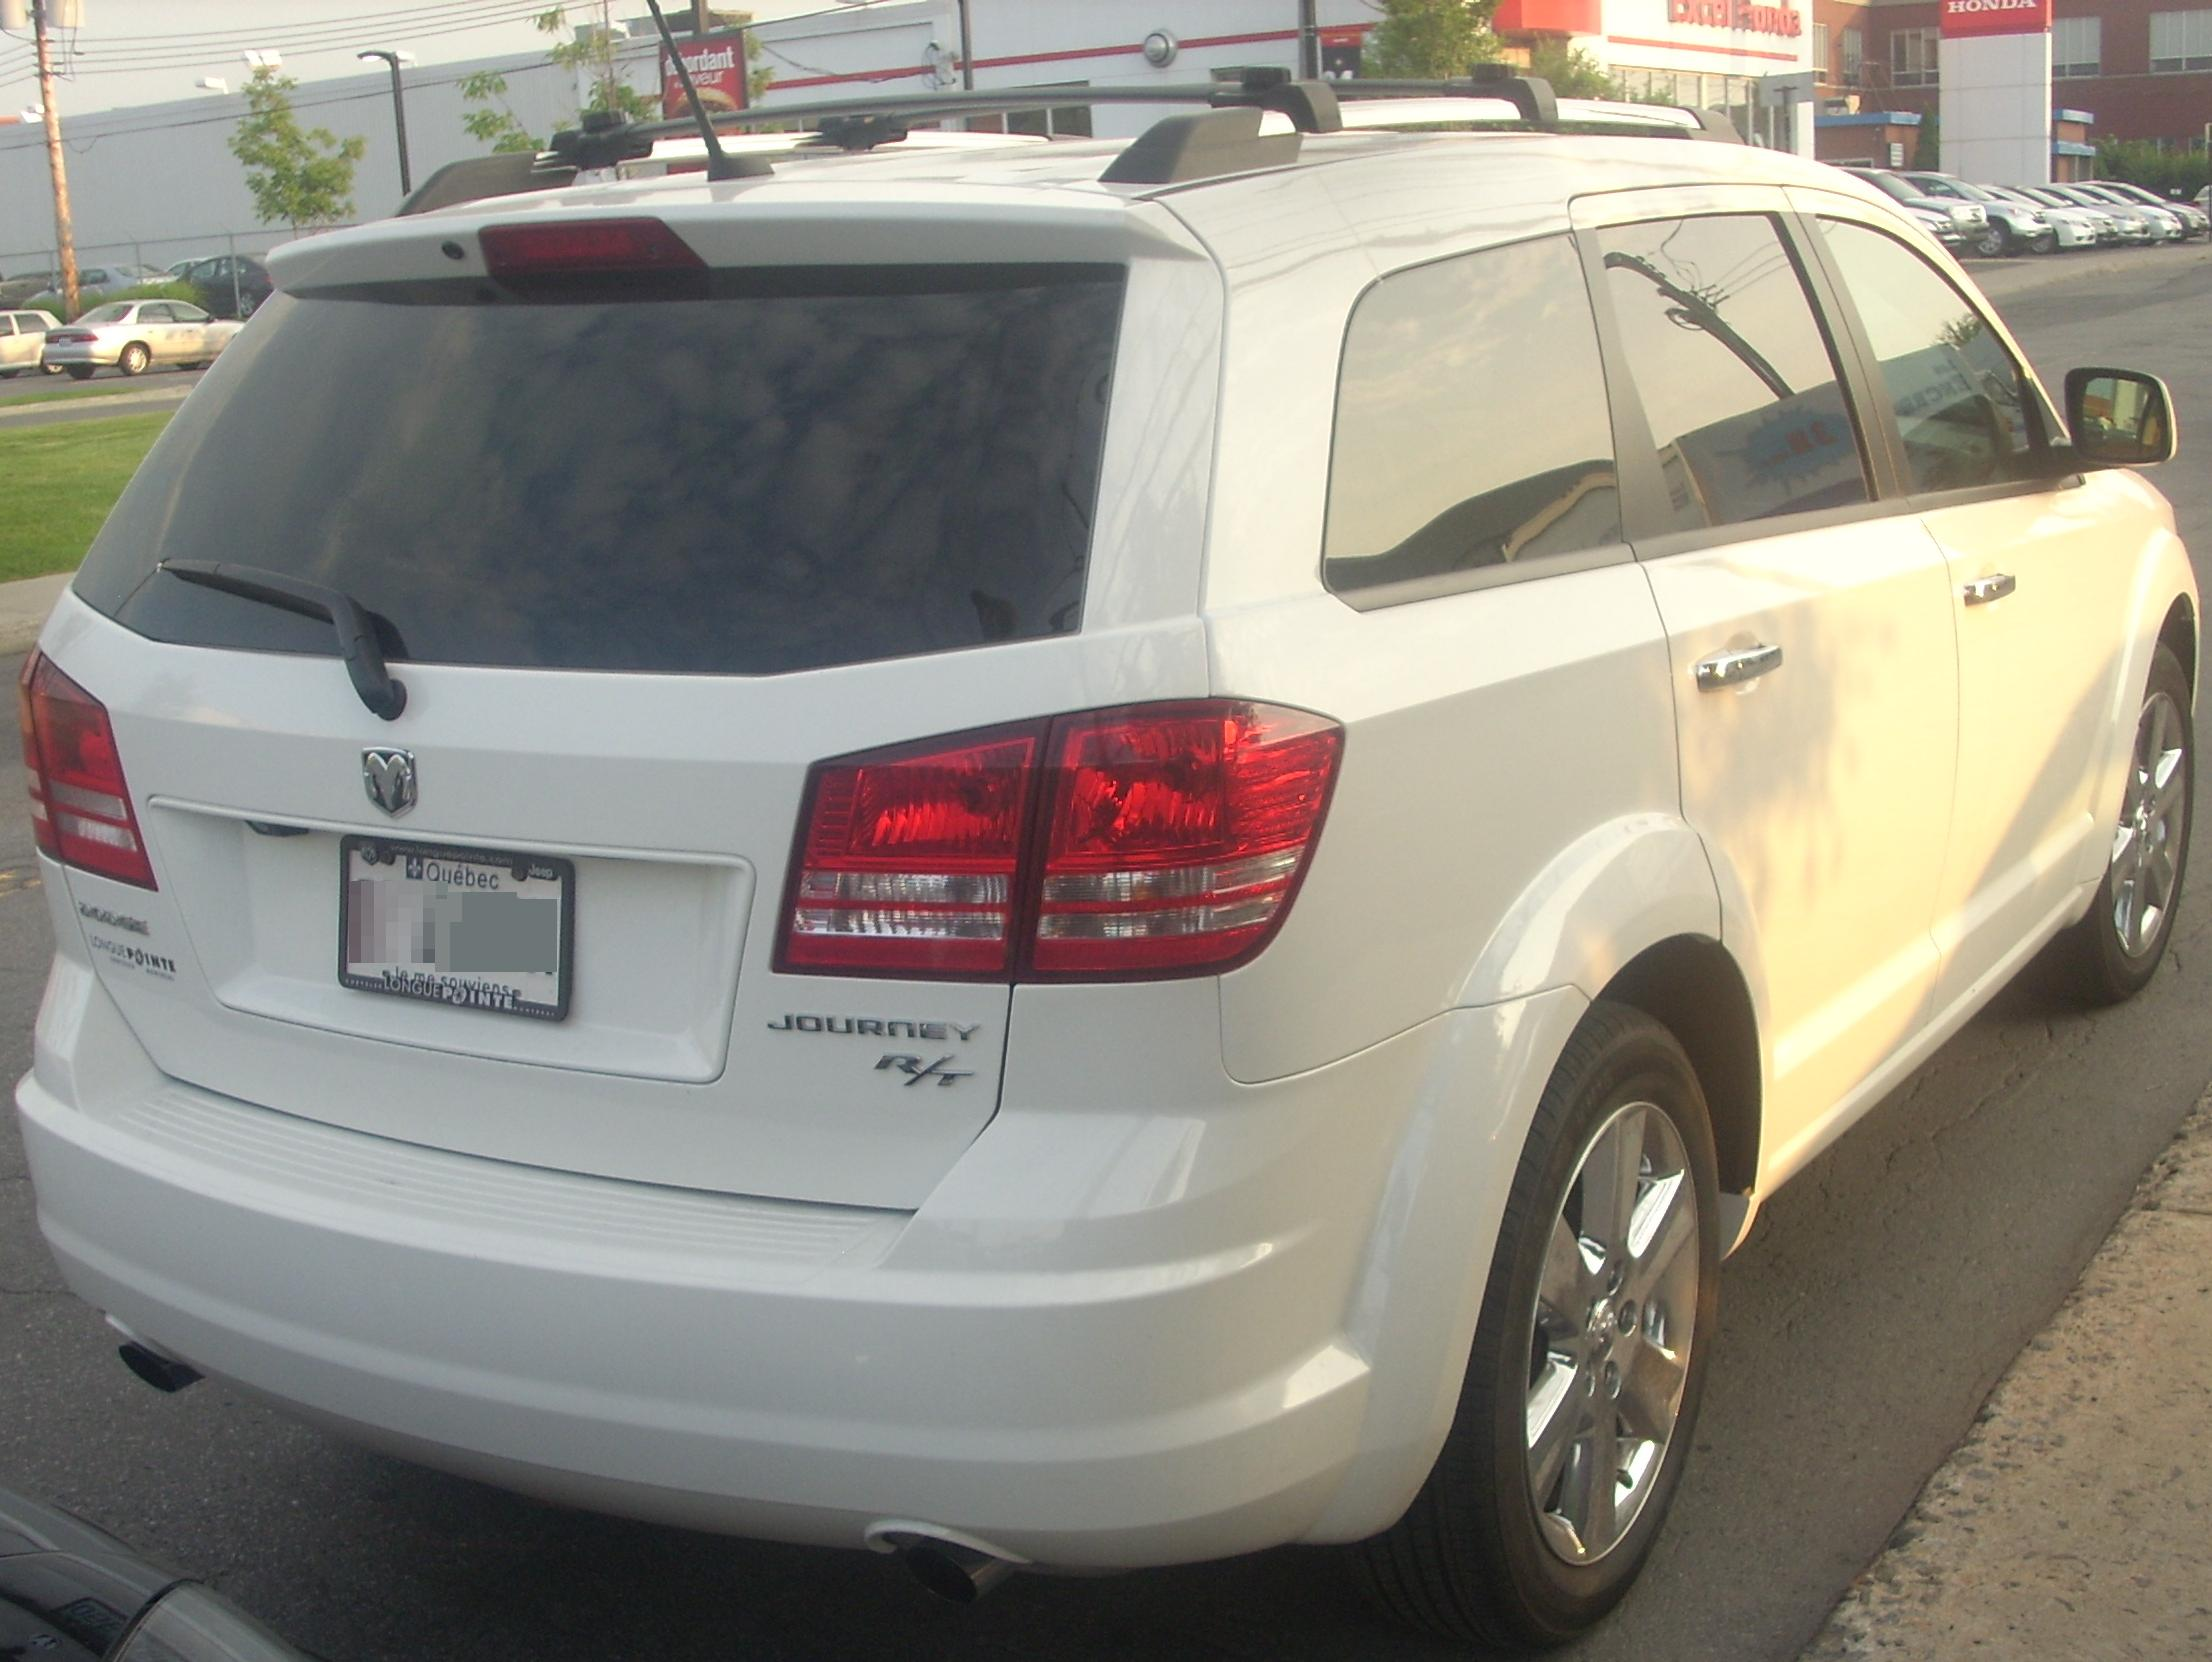 rt seats climate alberta power used dodge for in rear edmonton leather control journey inventory sale sunroof